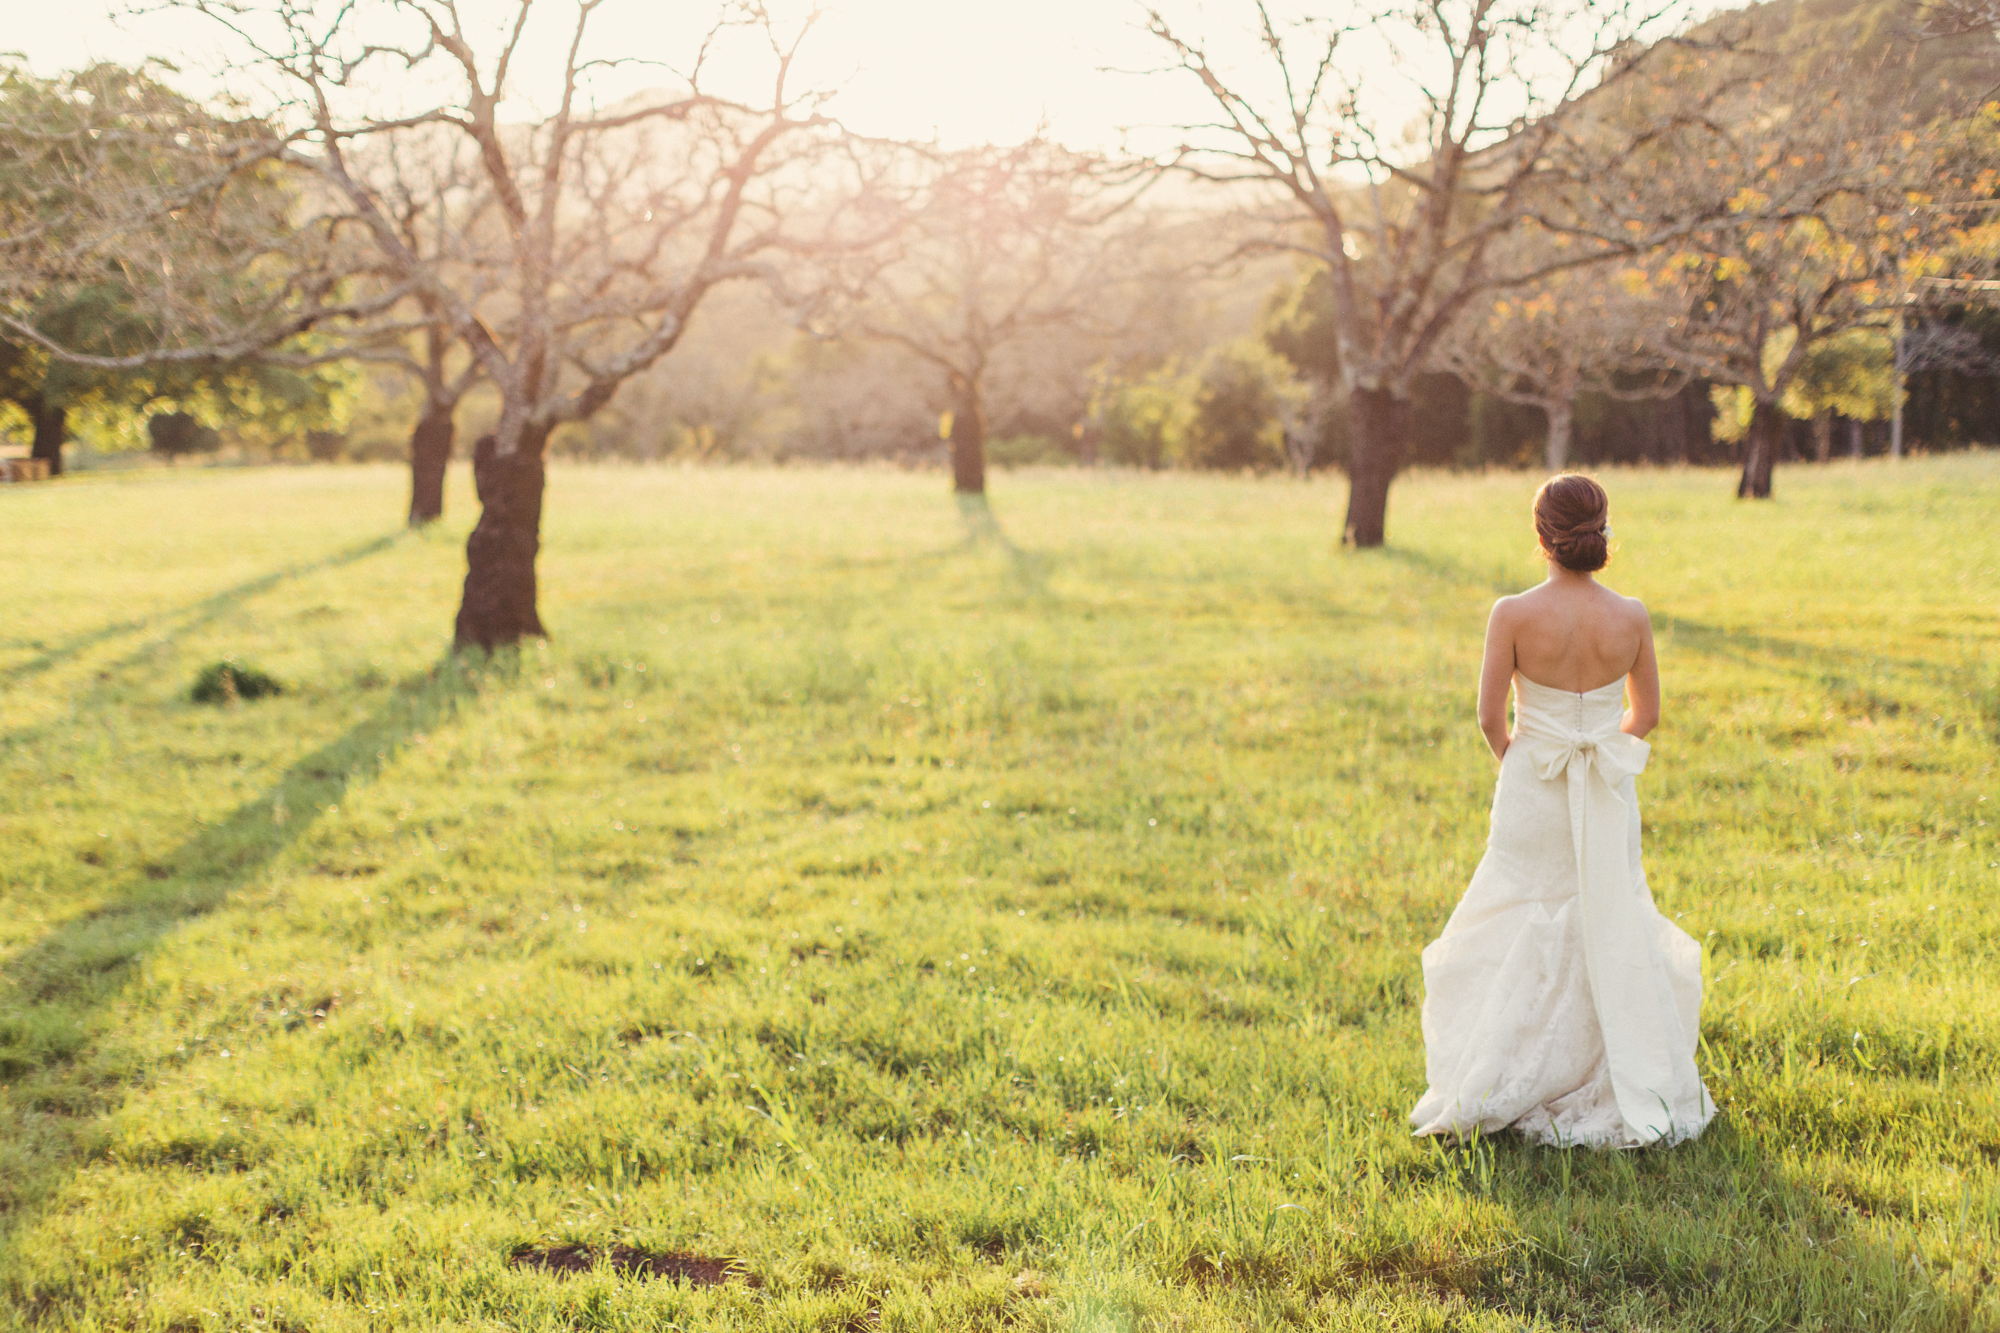 Triple S Ranch Wedding in Napa Valley @Anne-Claire Brun 0099